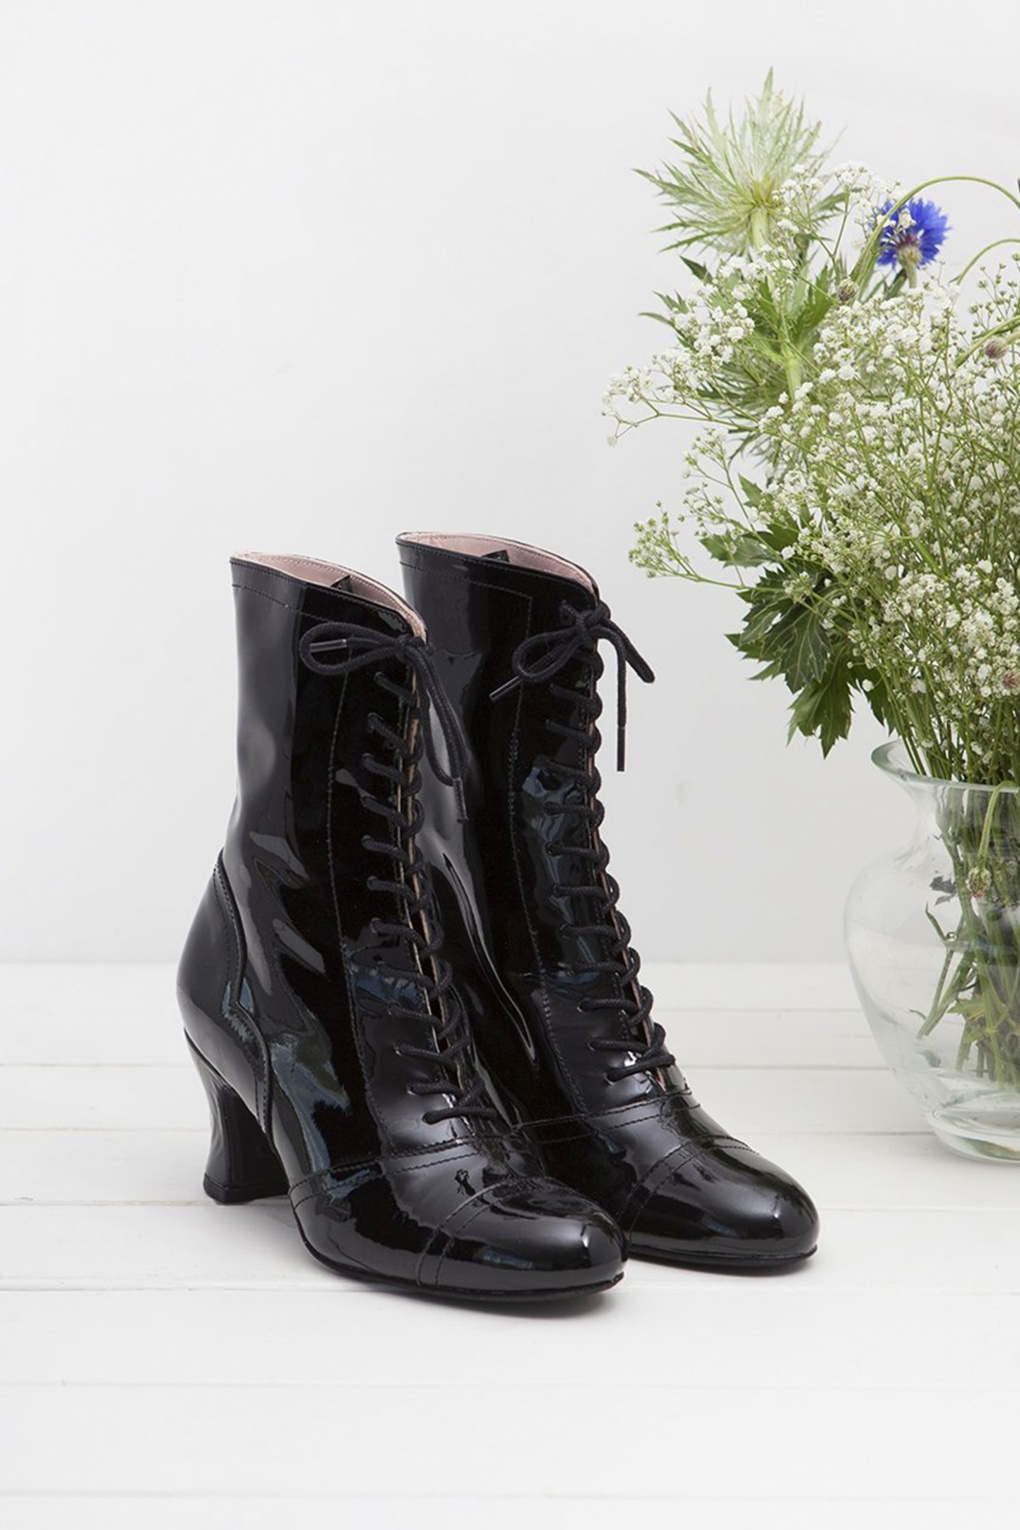 1950s Style Shoes | Heels, Flats, Saddle Shoes 40s Frida Lace Up Booties in Patent Black £174.38 AT vintagedancer.com